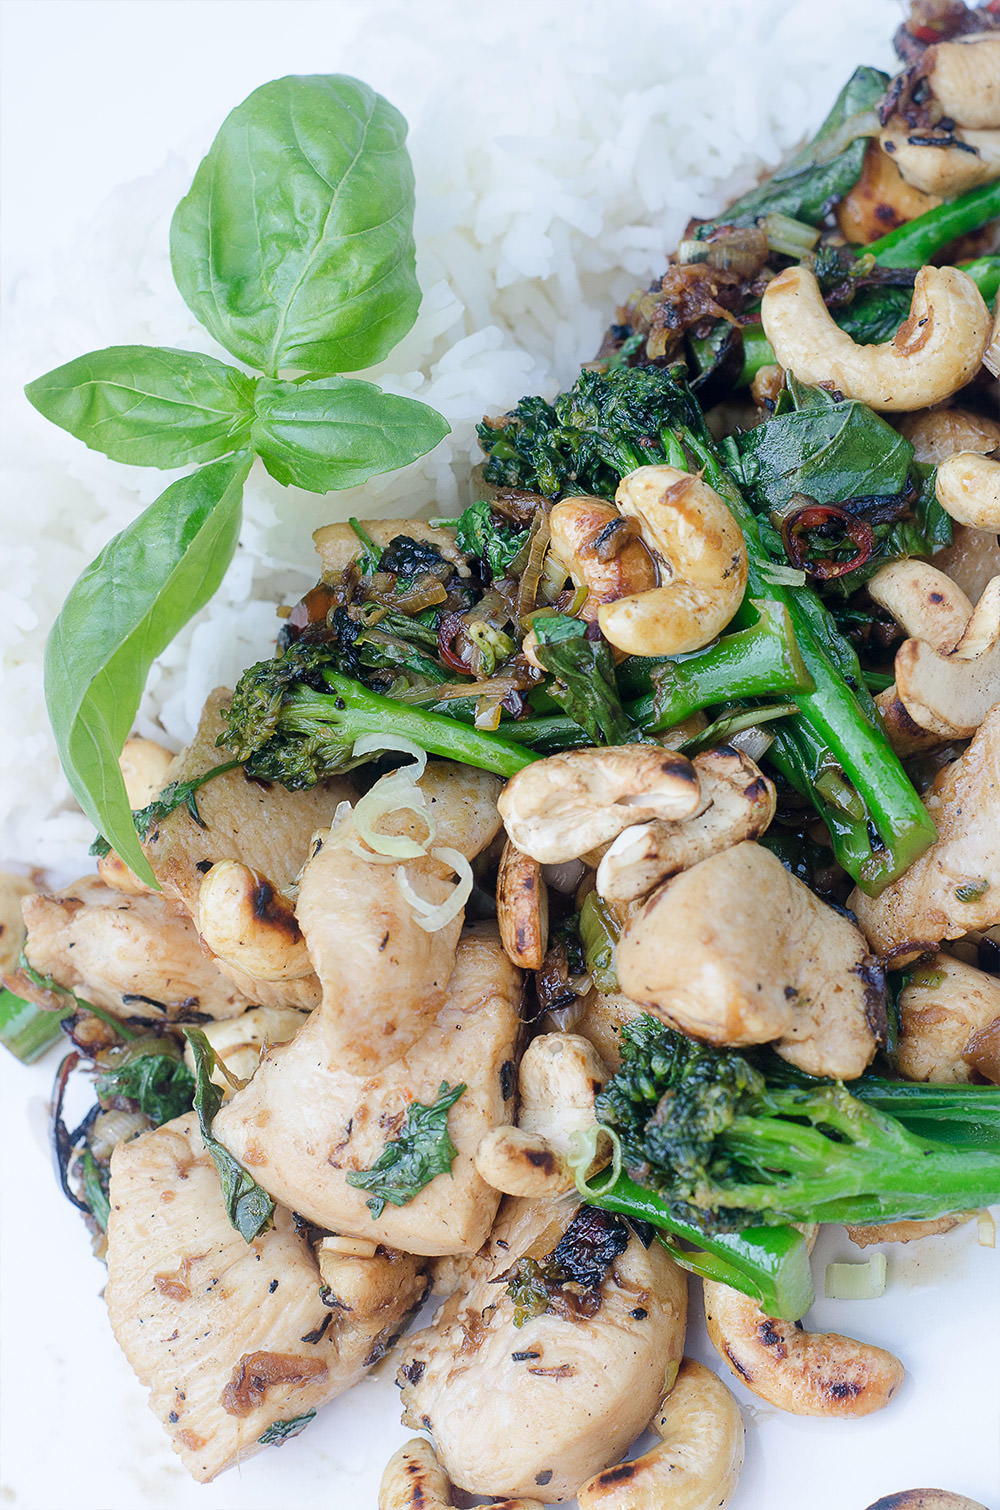 Thai Stir Fry / Karen E. Photography (p)